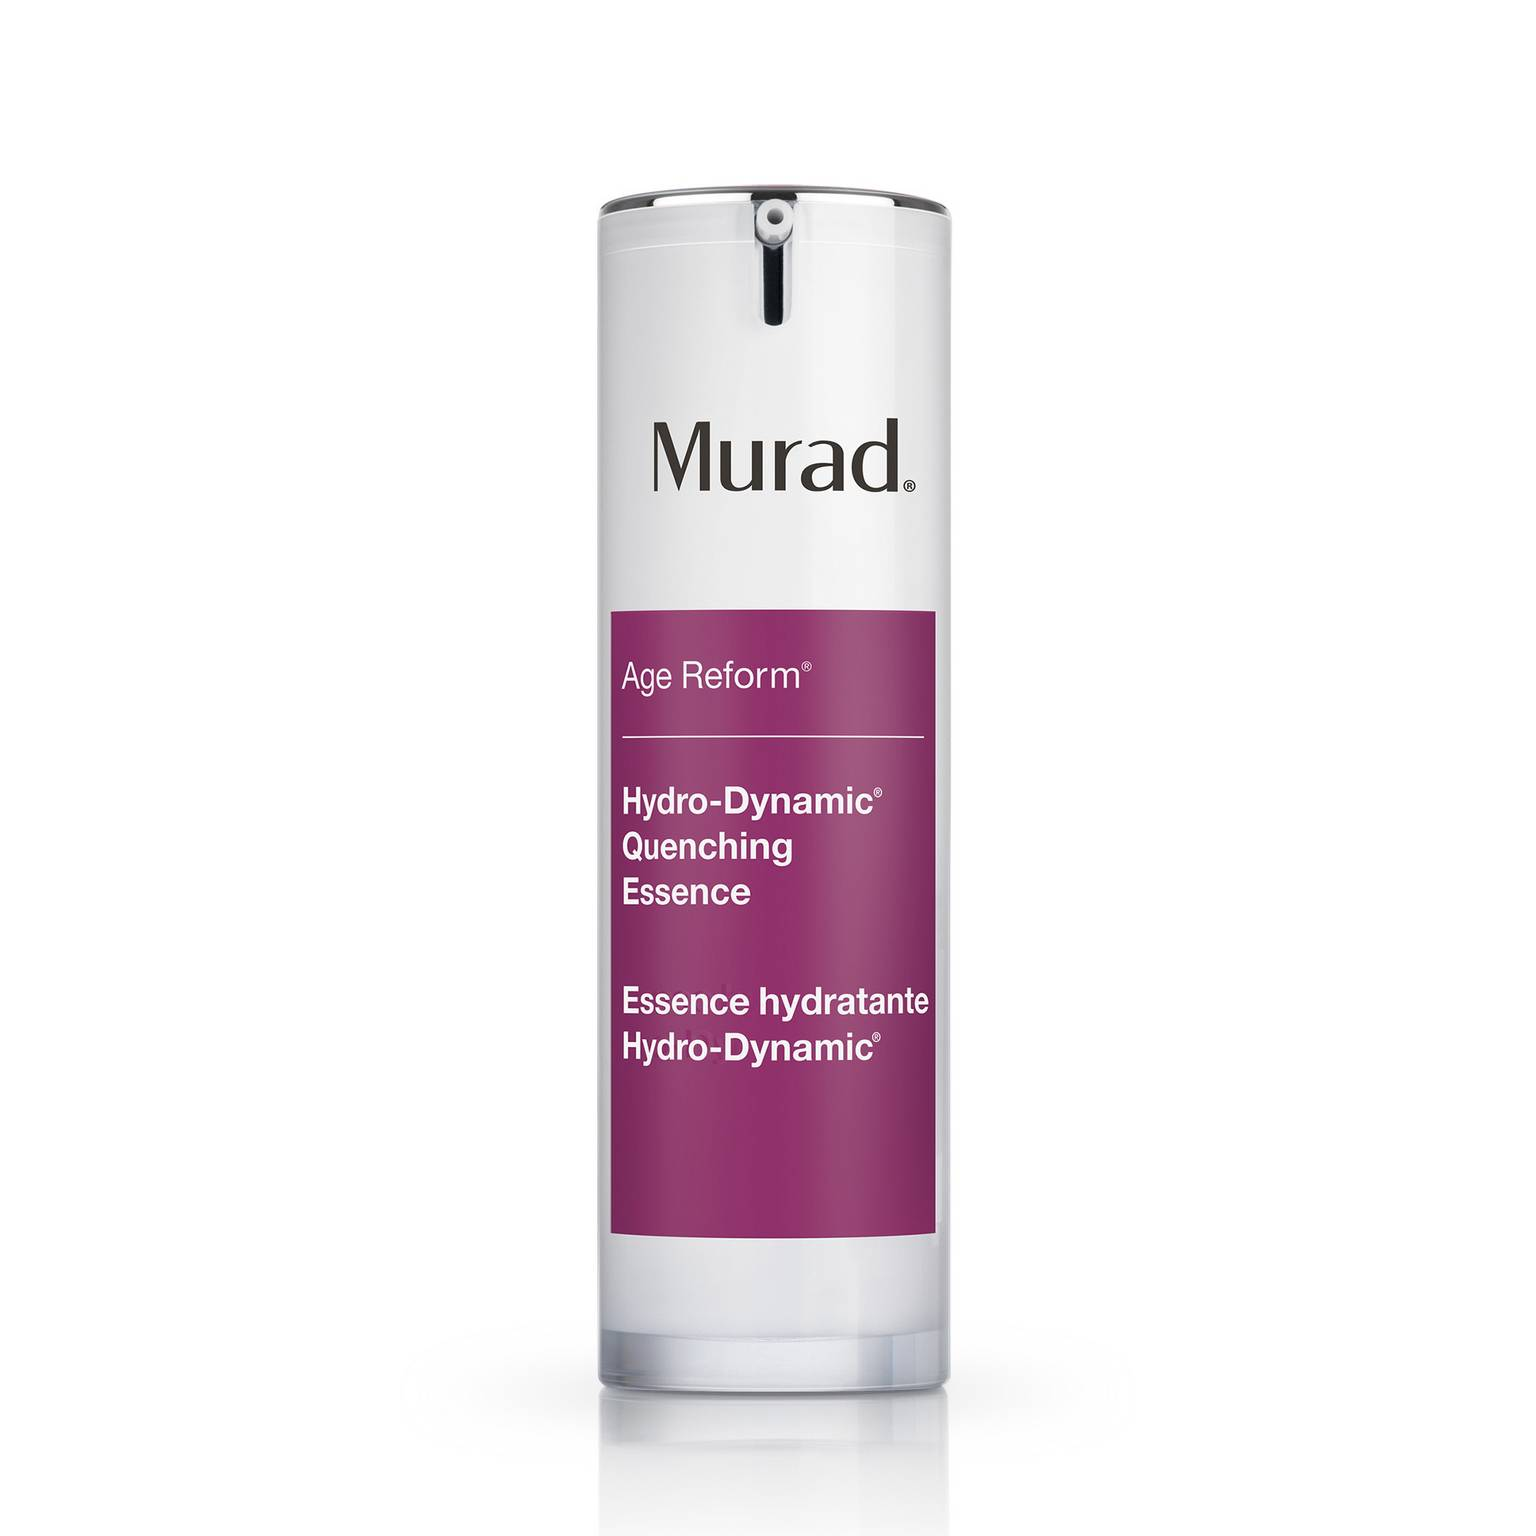 Hydrodynamic Quenching Essence Treatment 30ml